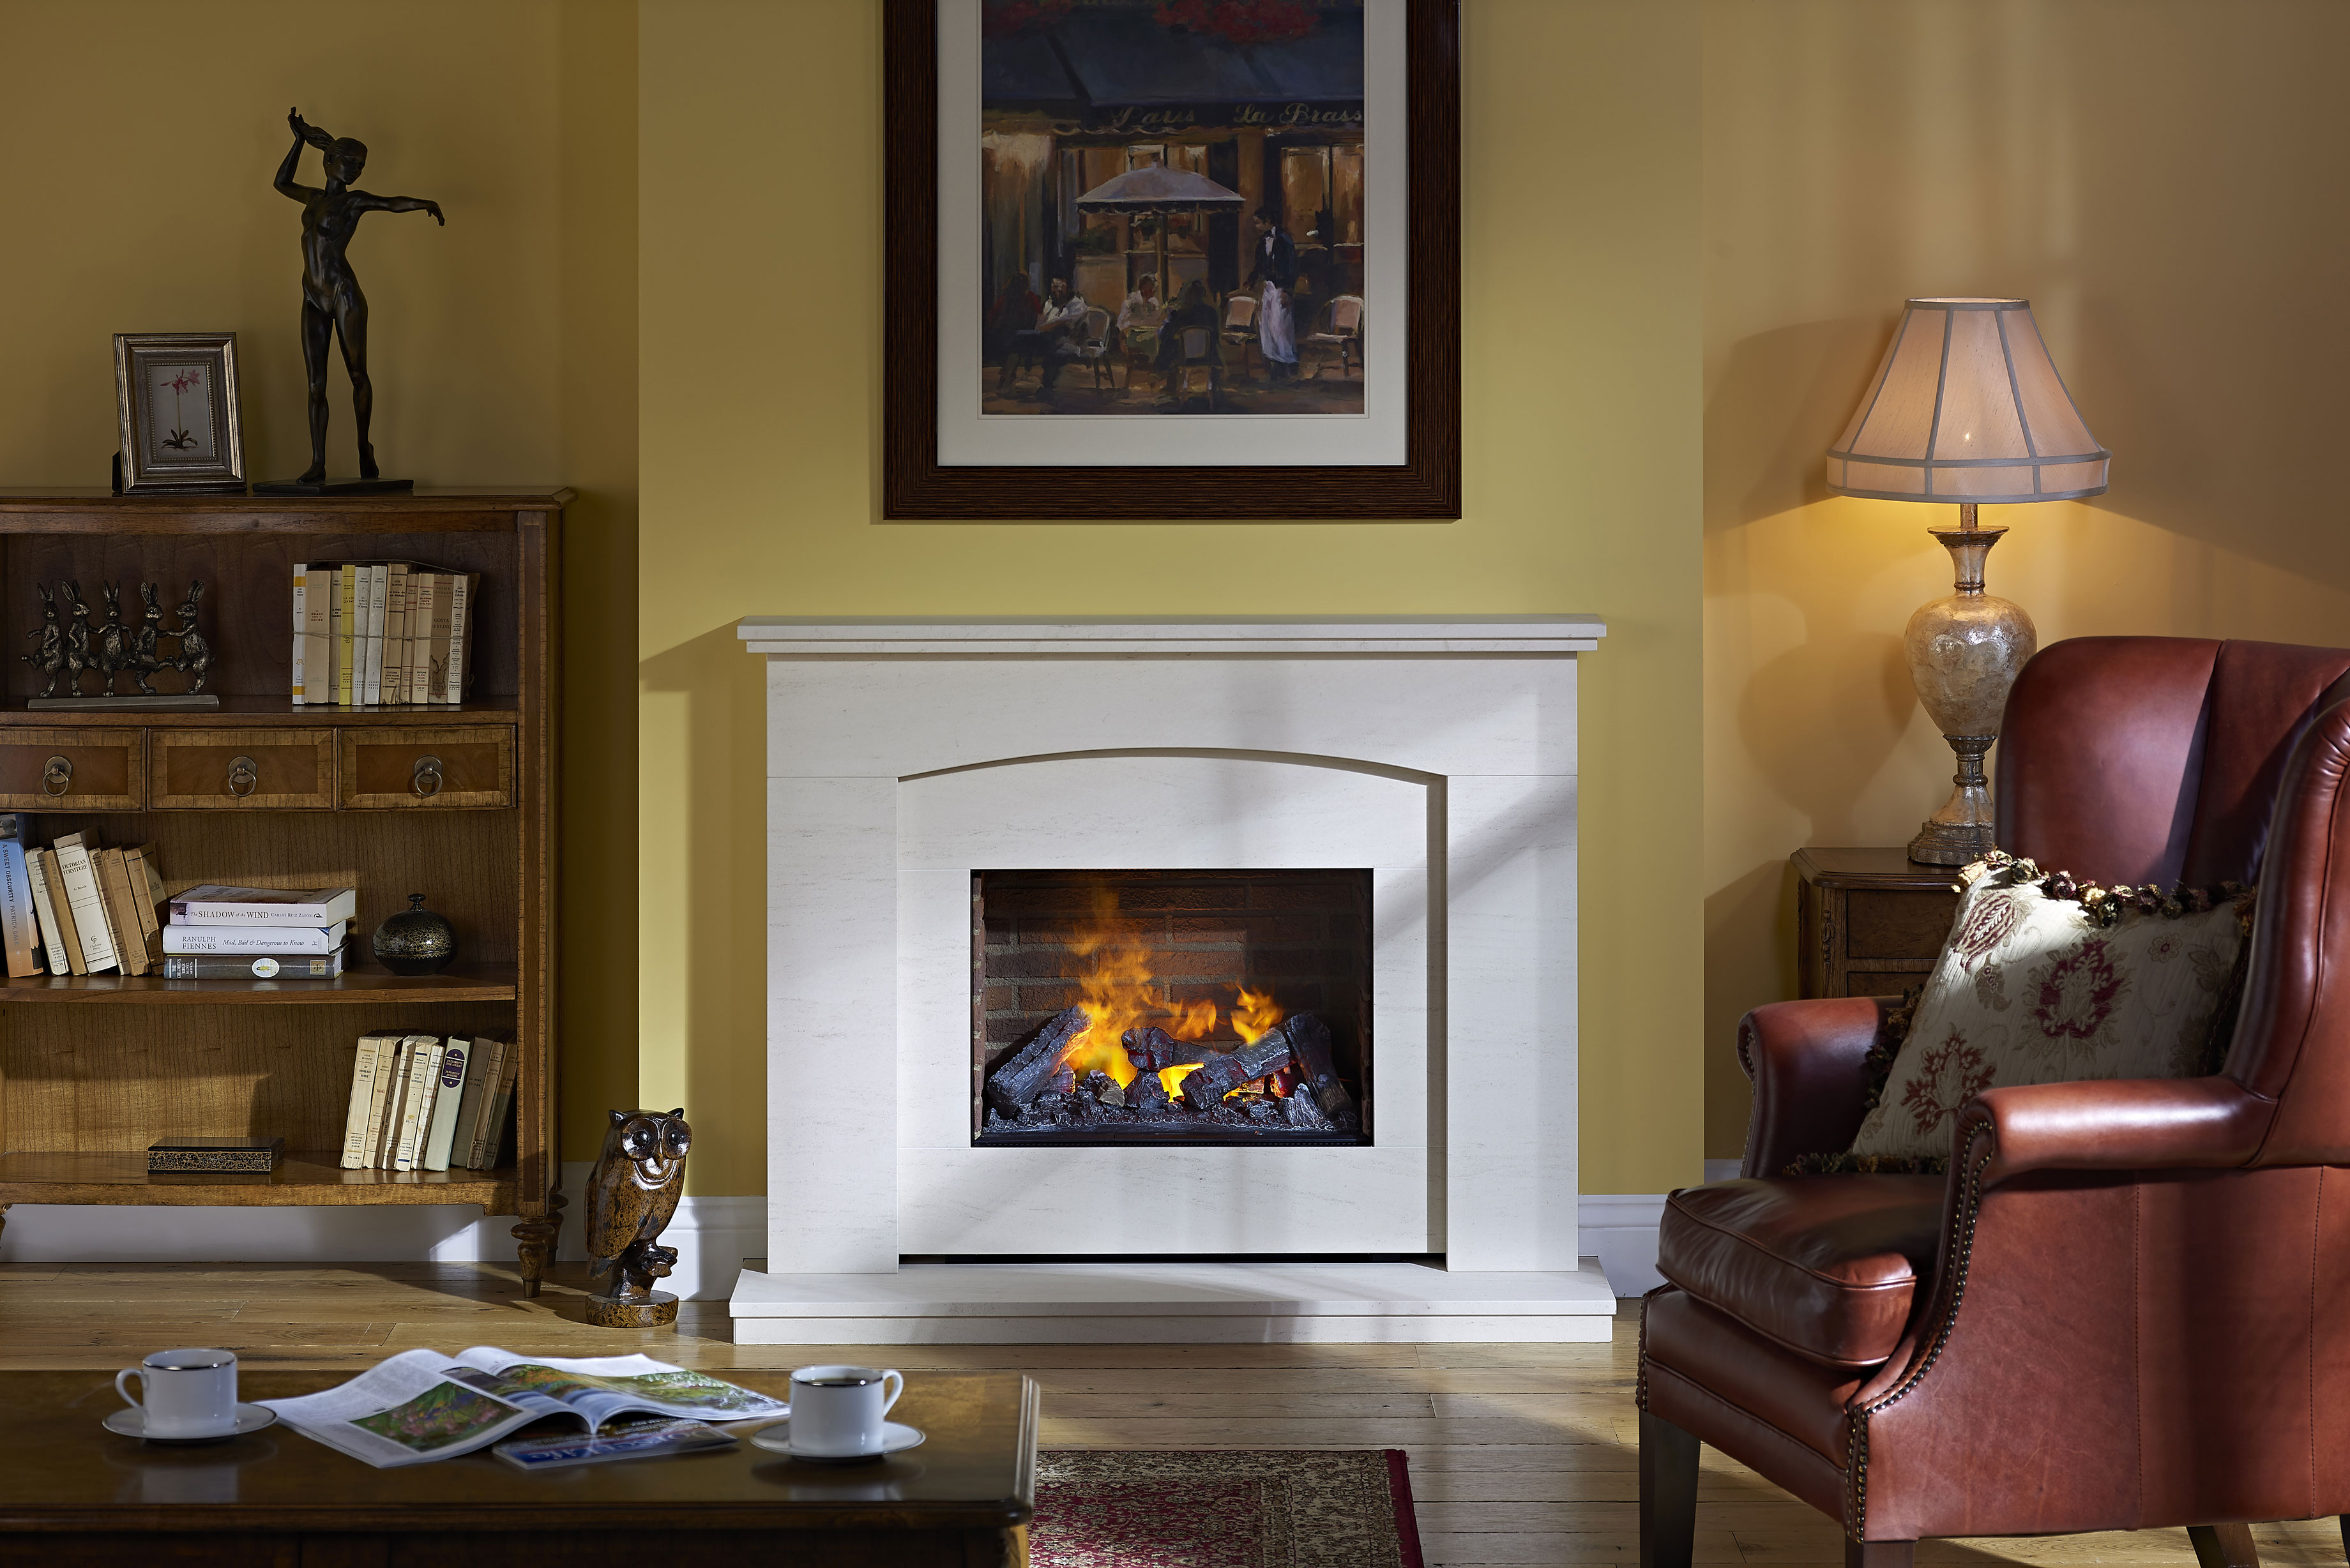 flv video electric wallmount myst clinton opti thumb gallery v fireplaces fireplace